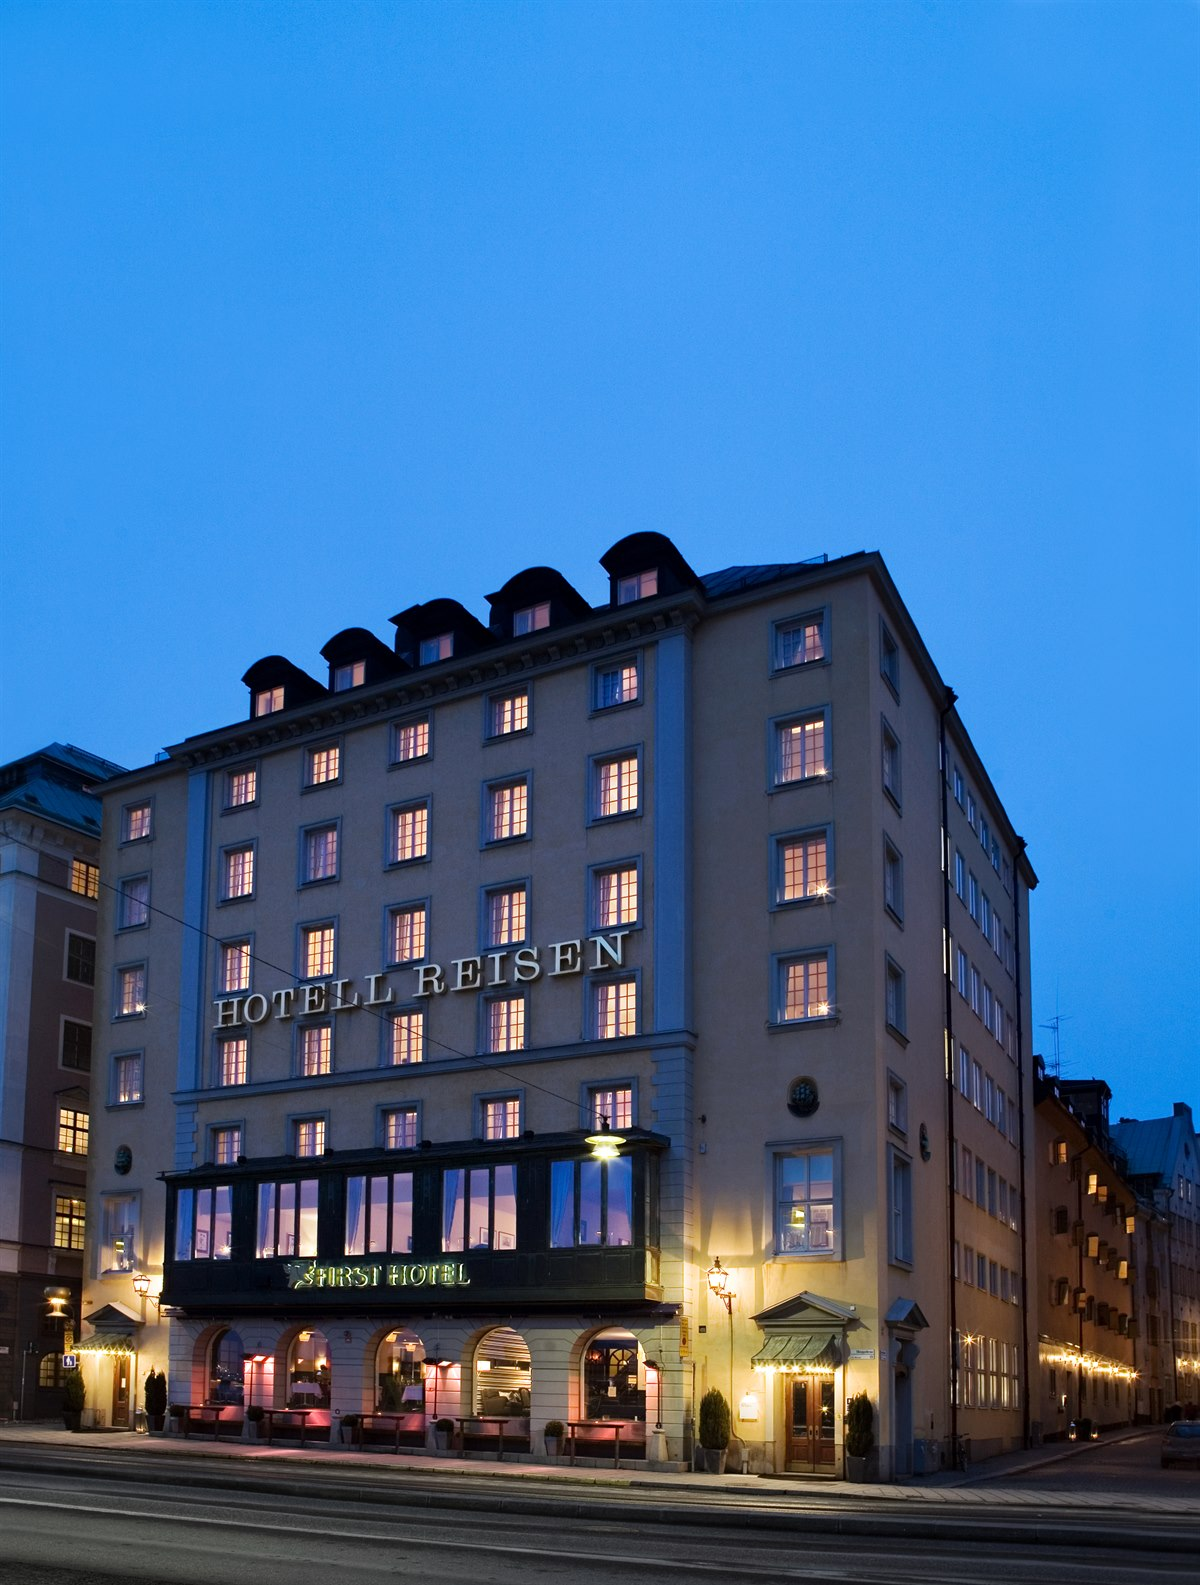 Hotel stockholm first hotel reisen in the old town for Hotel stockholm